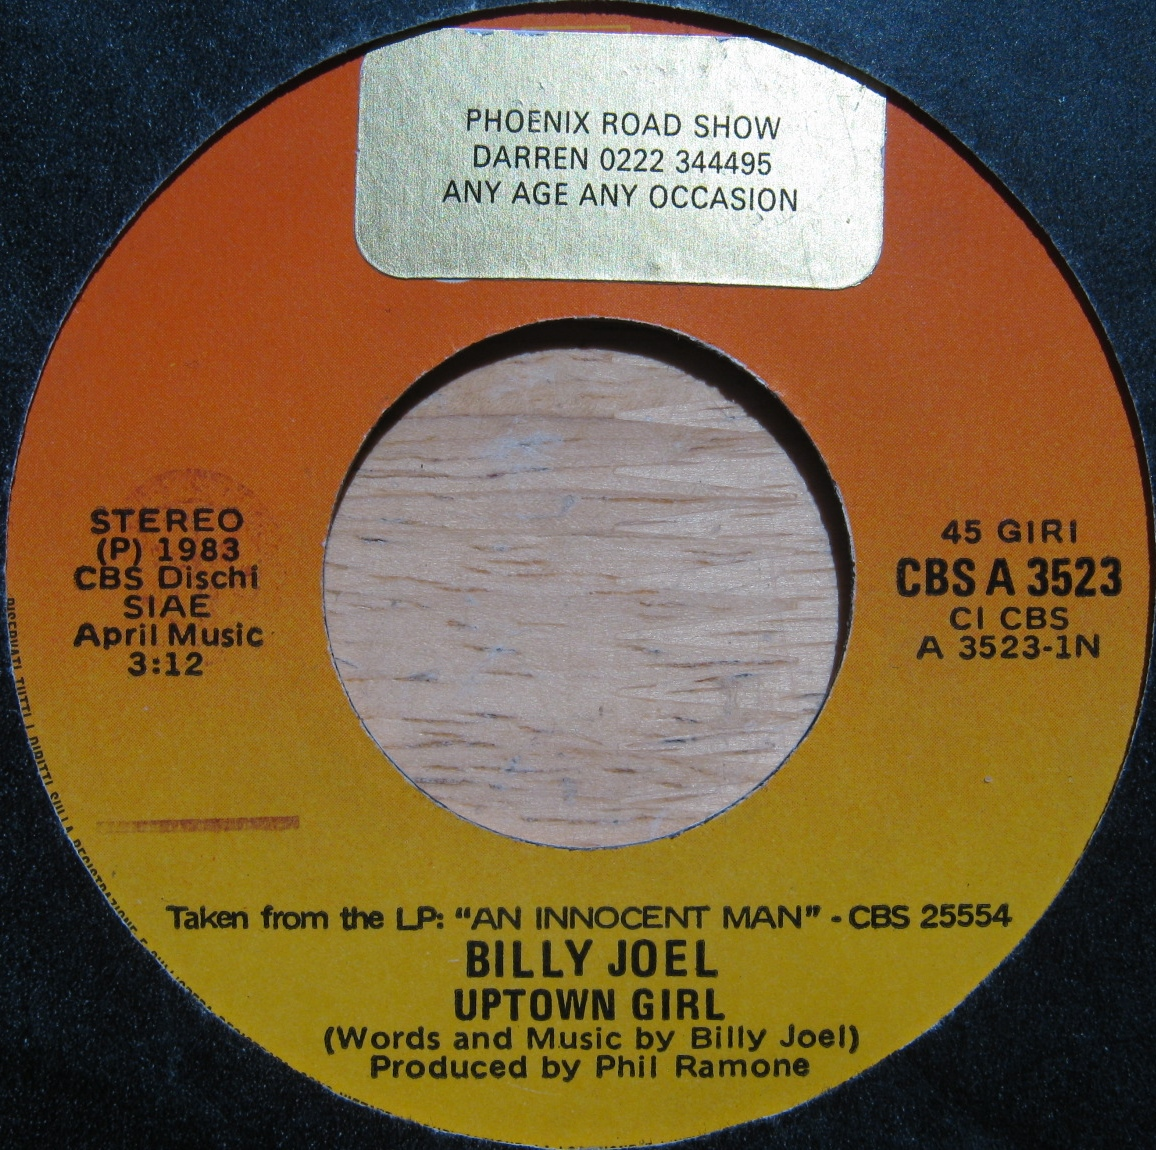 Billy Joel - Uptown Girl Record